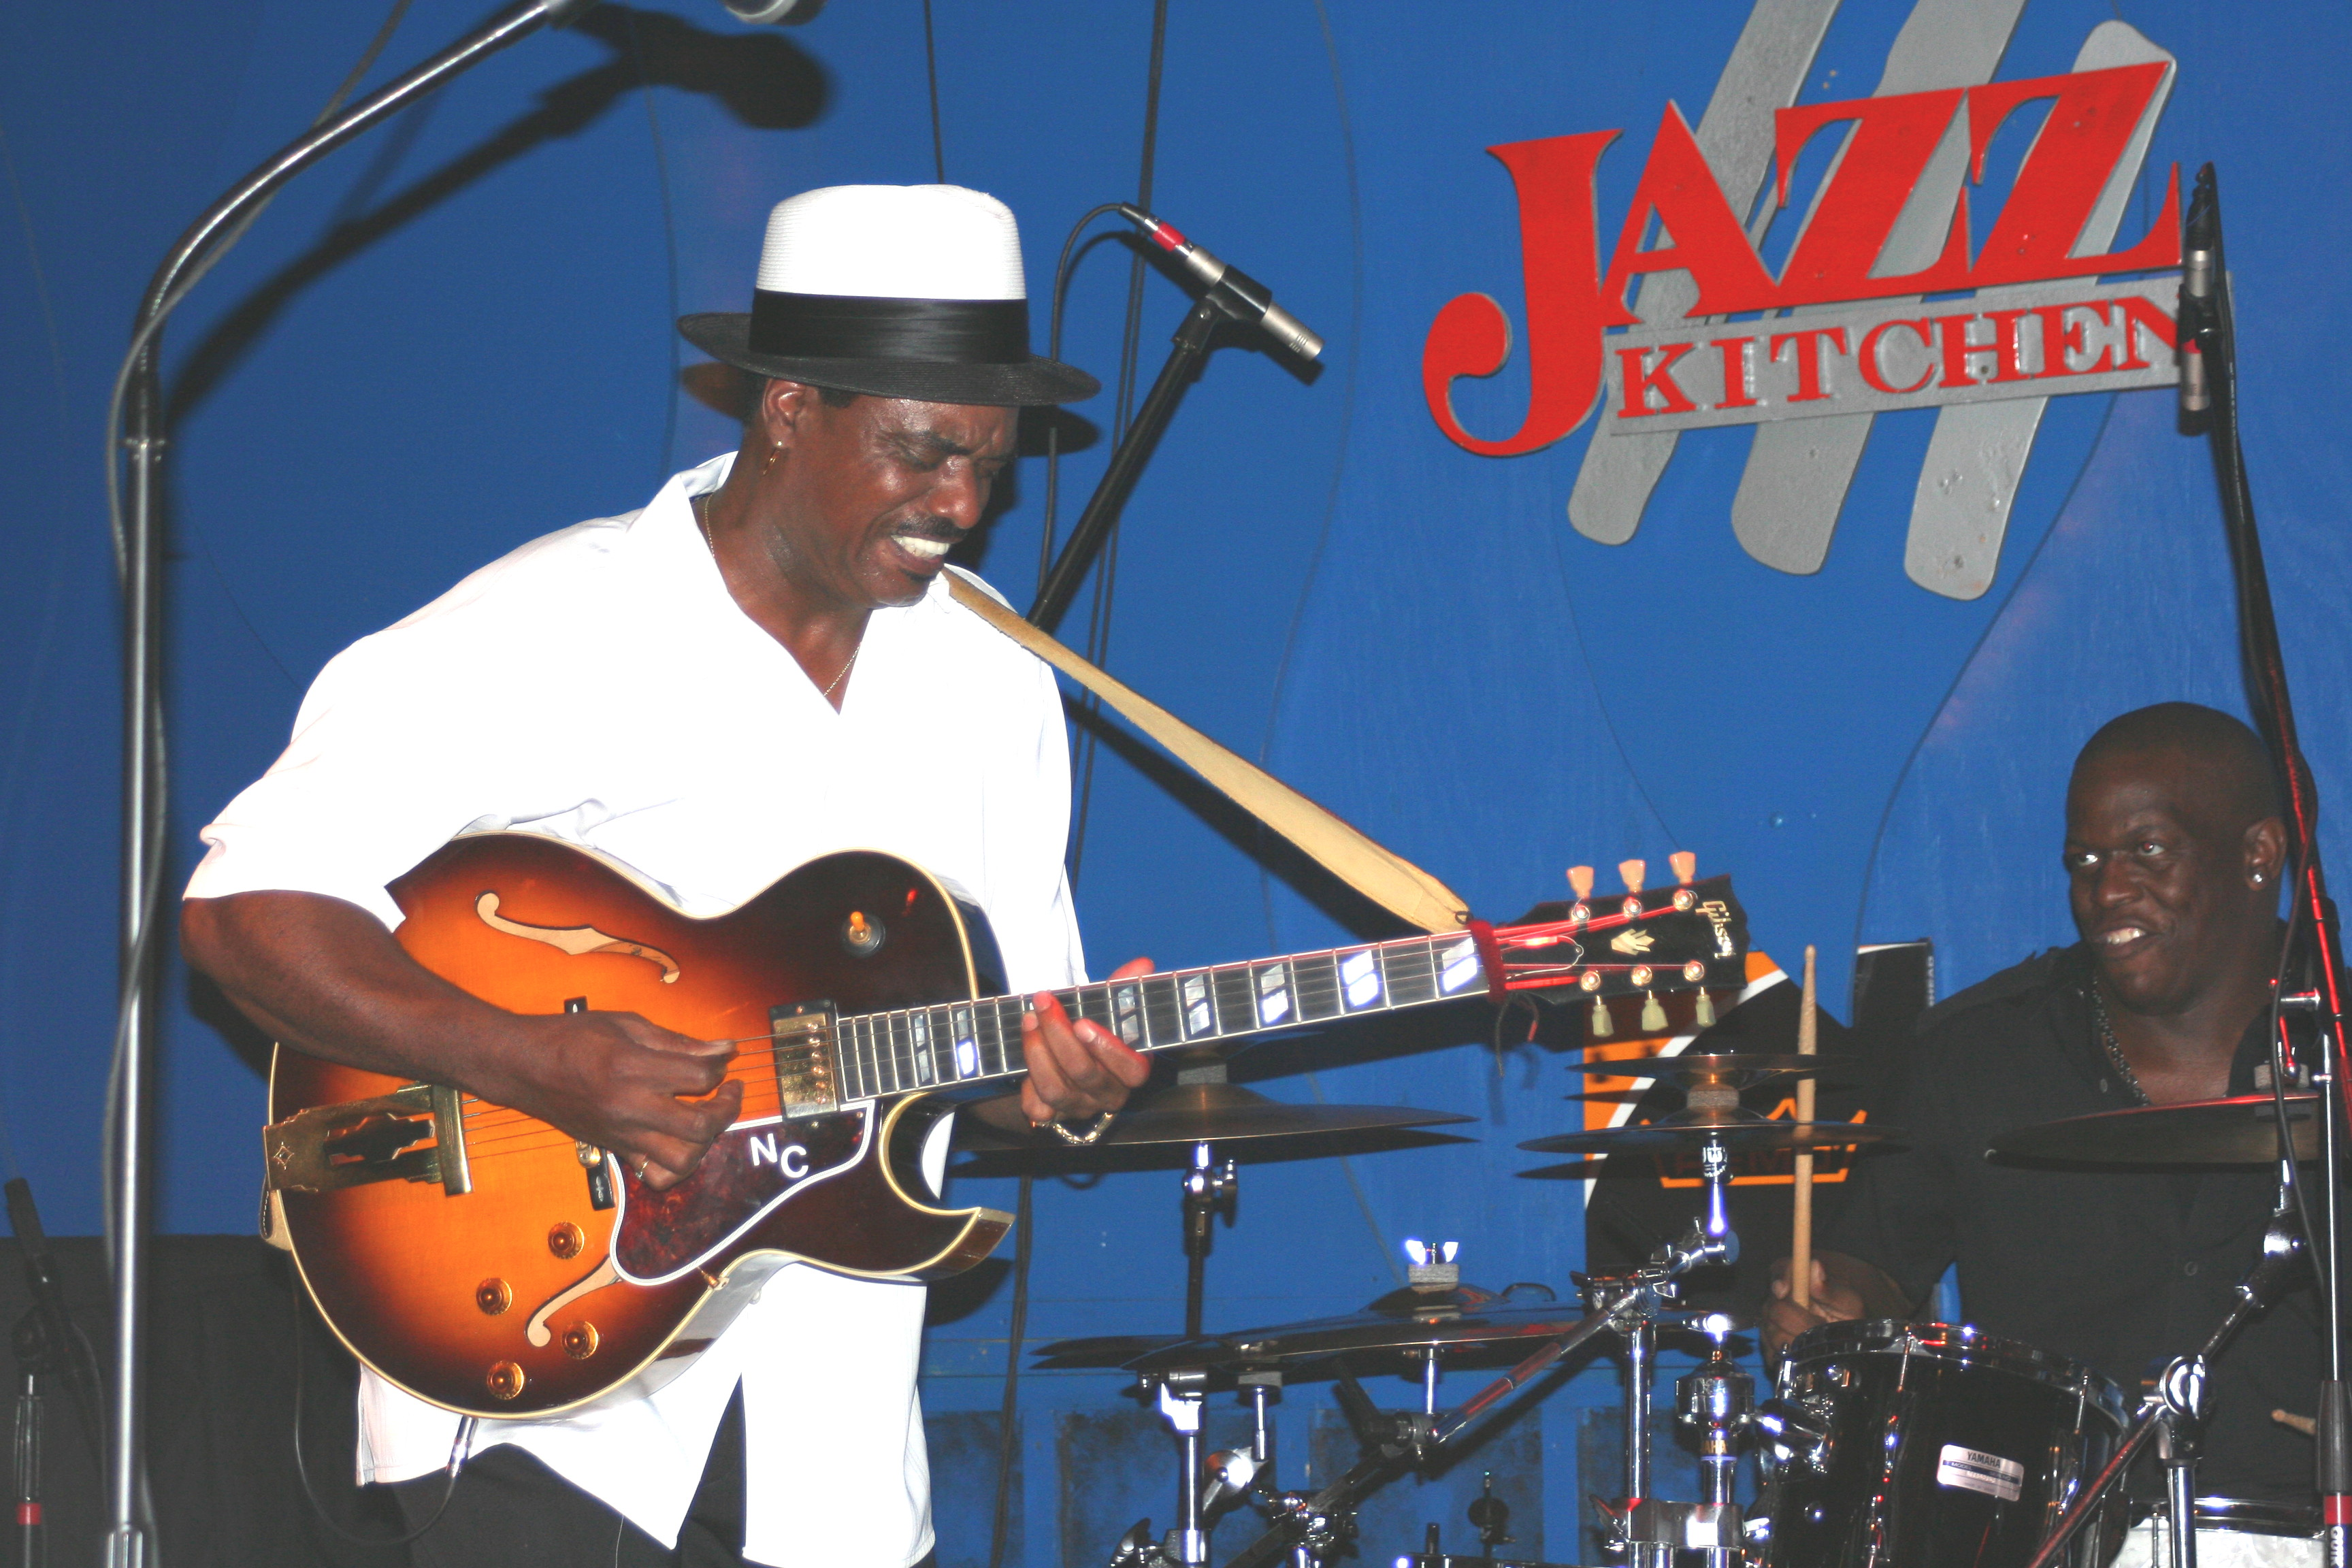 Nick Colionne @ Jazz Kitchen